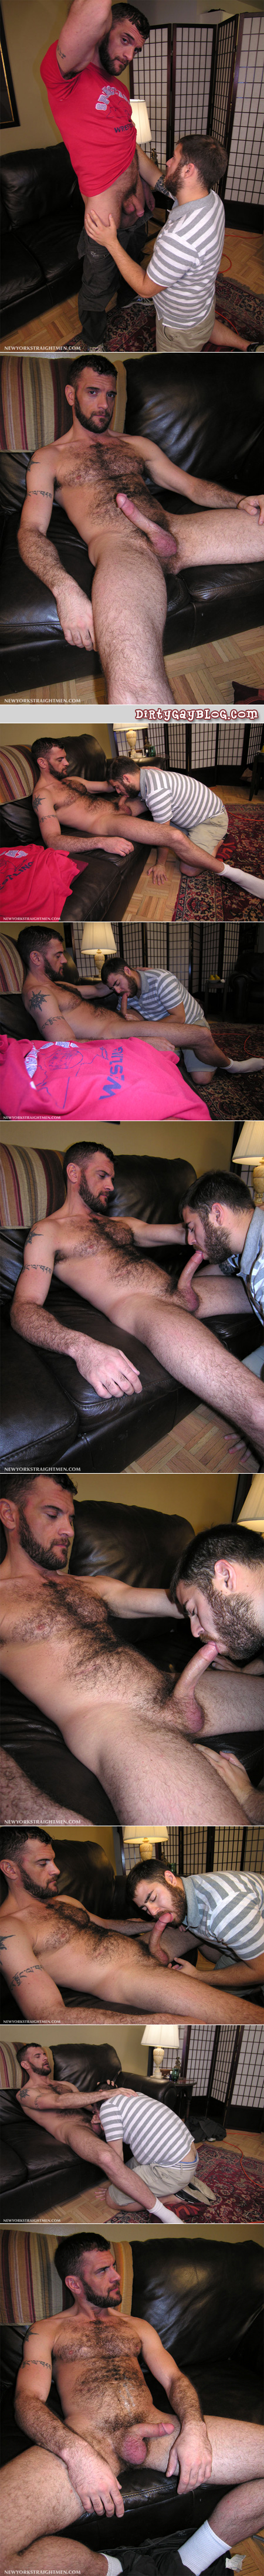 Very hairy straight construction worker getting a blowjob from another man.